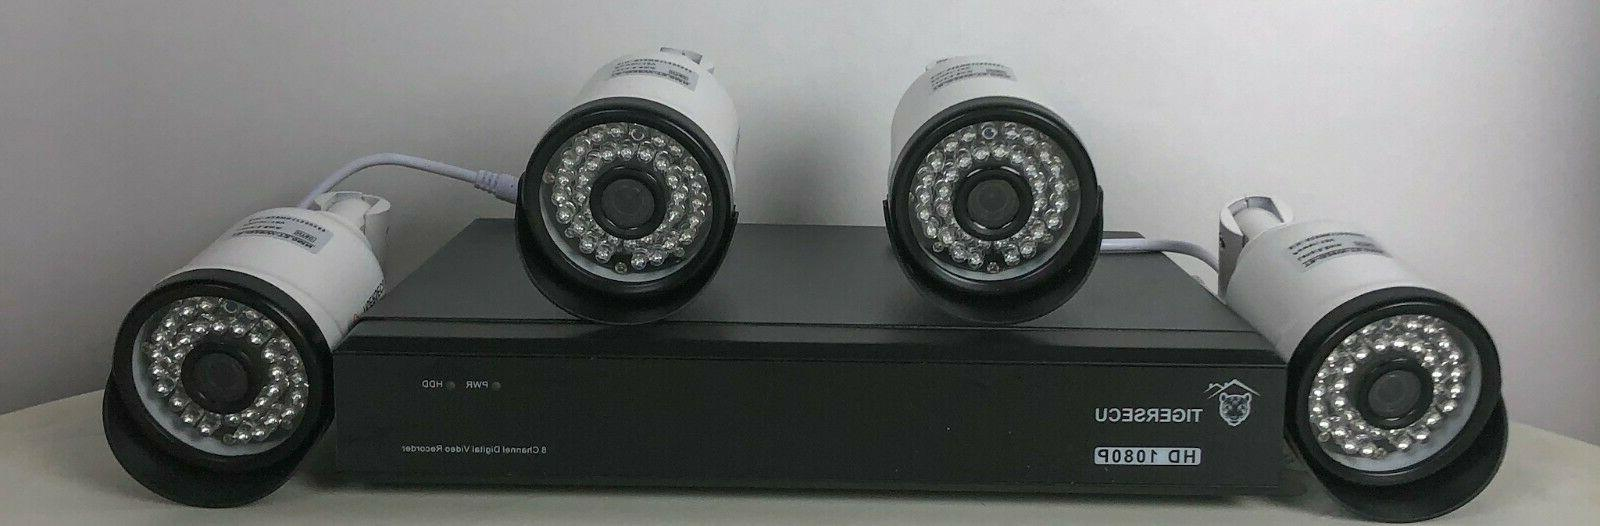 security dvr system